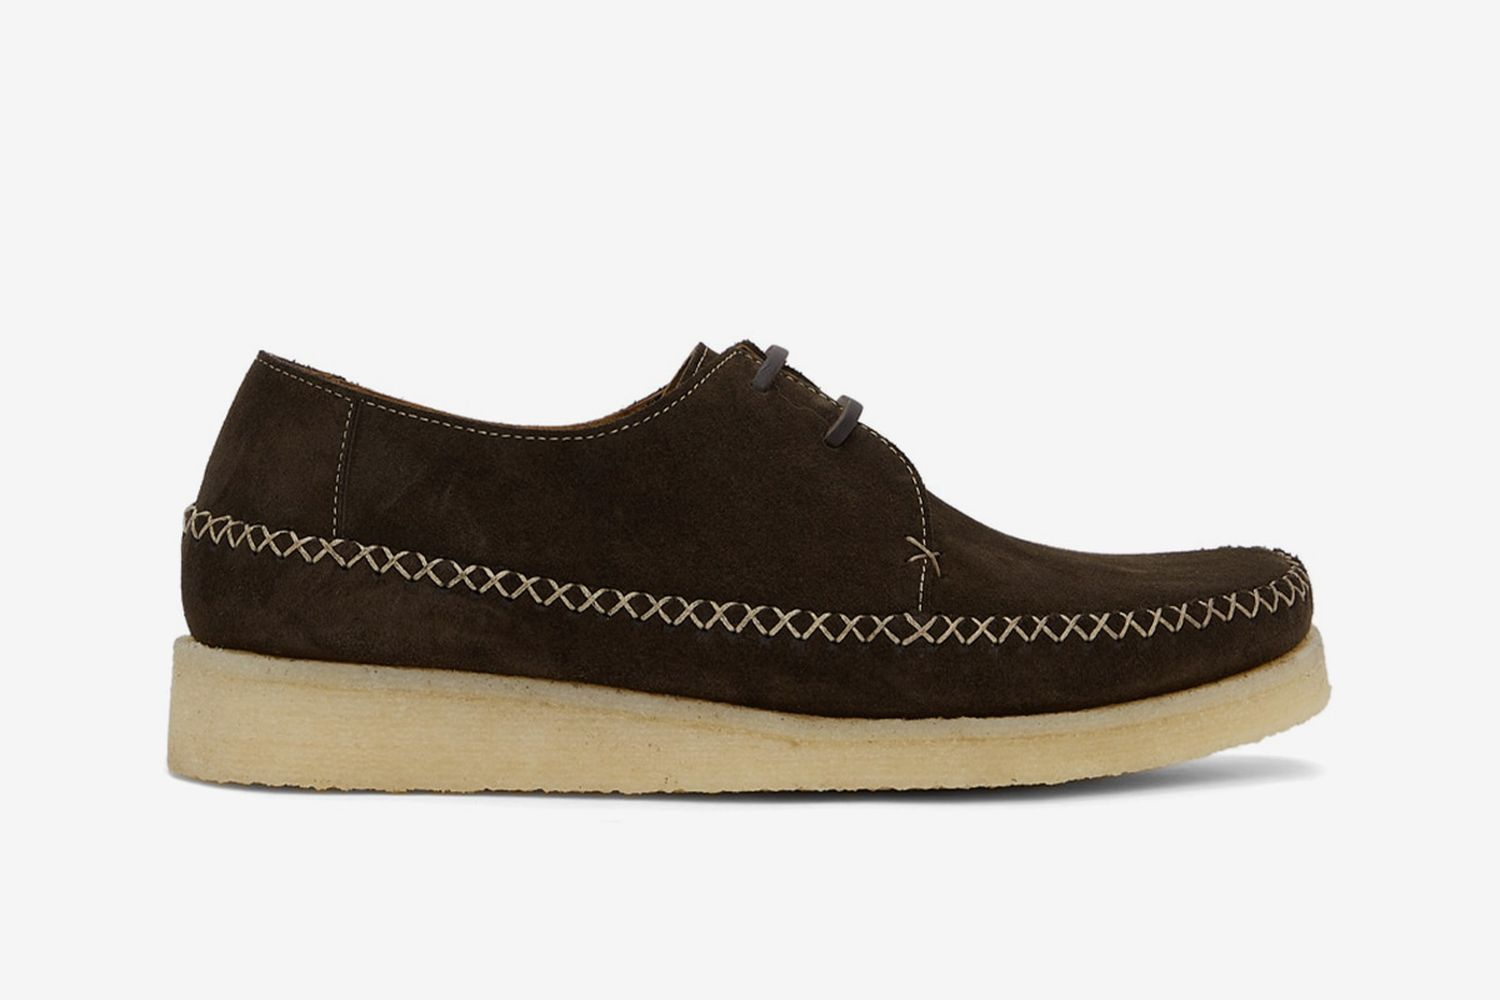 Padmore & Barnes Edition Suede Loafers